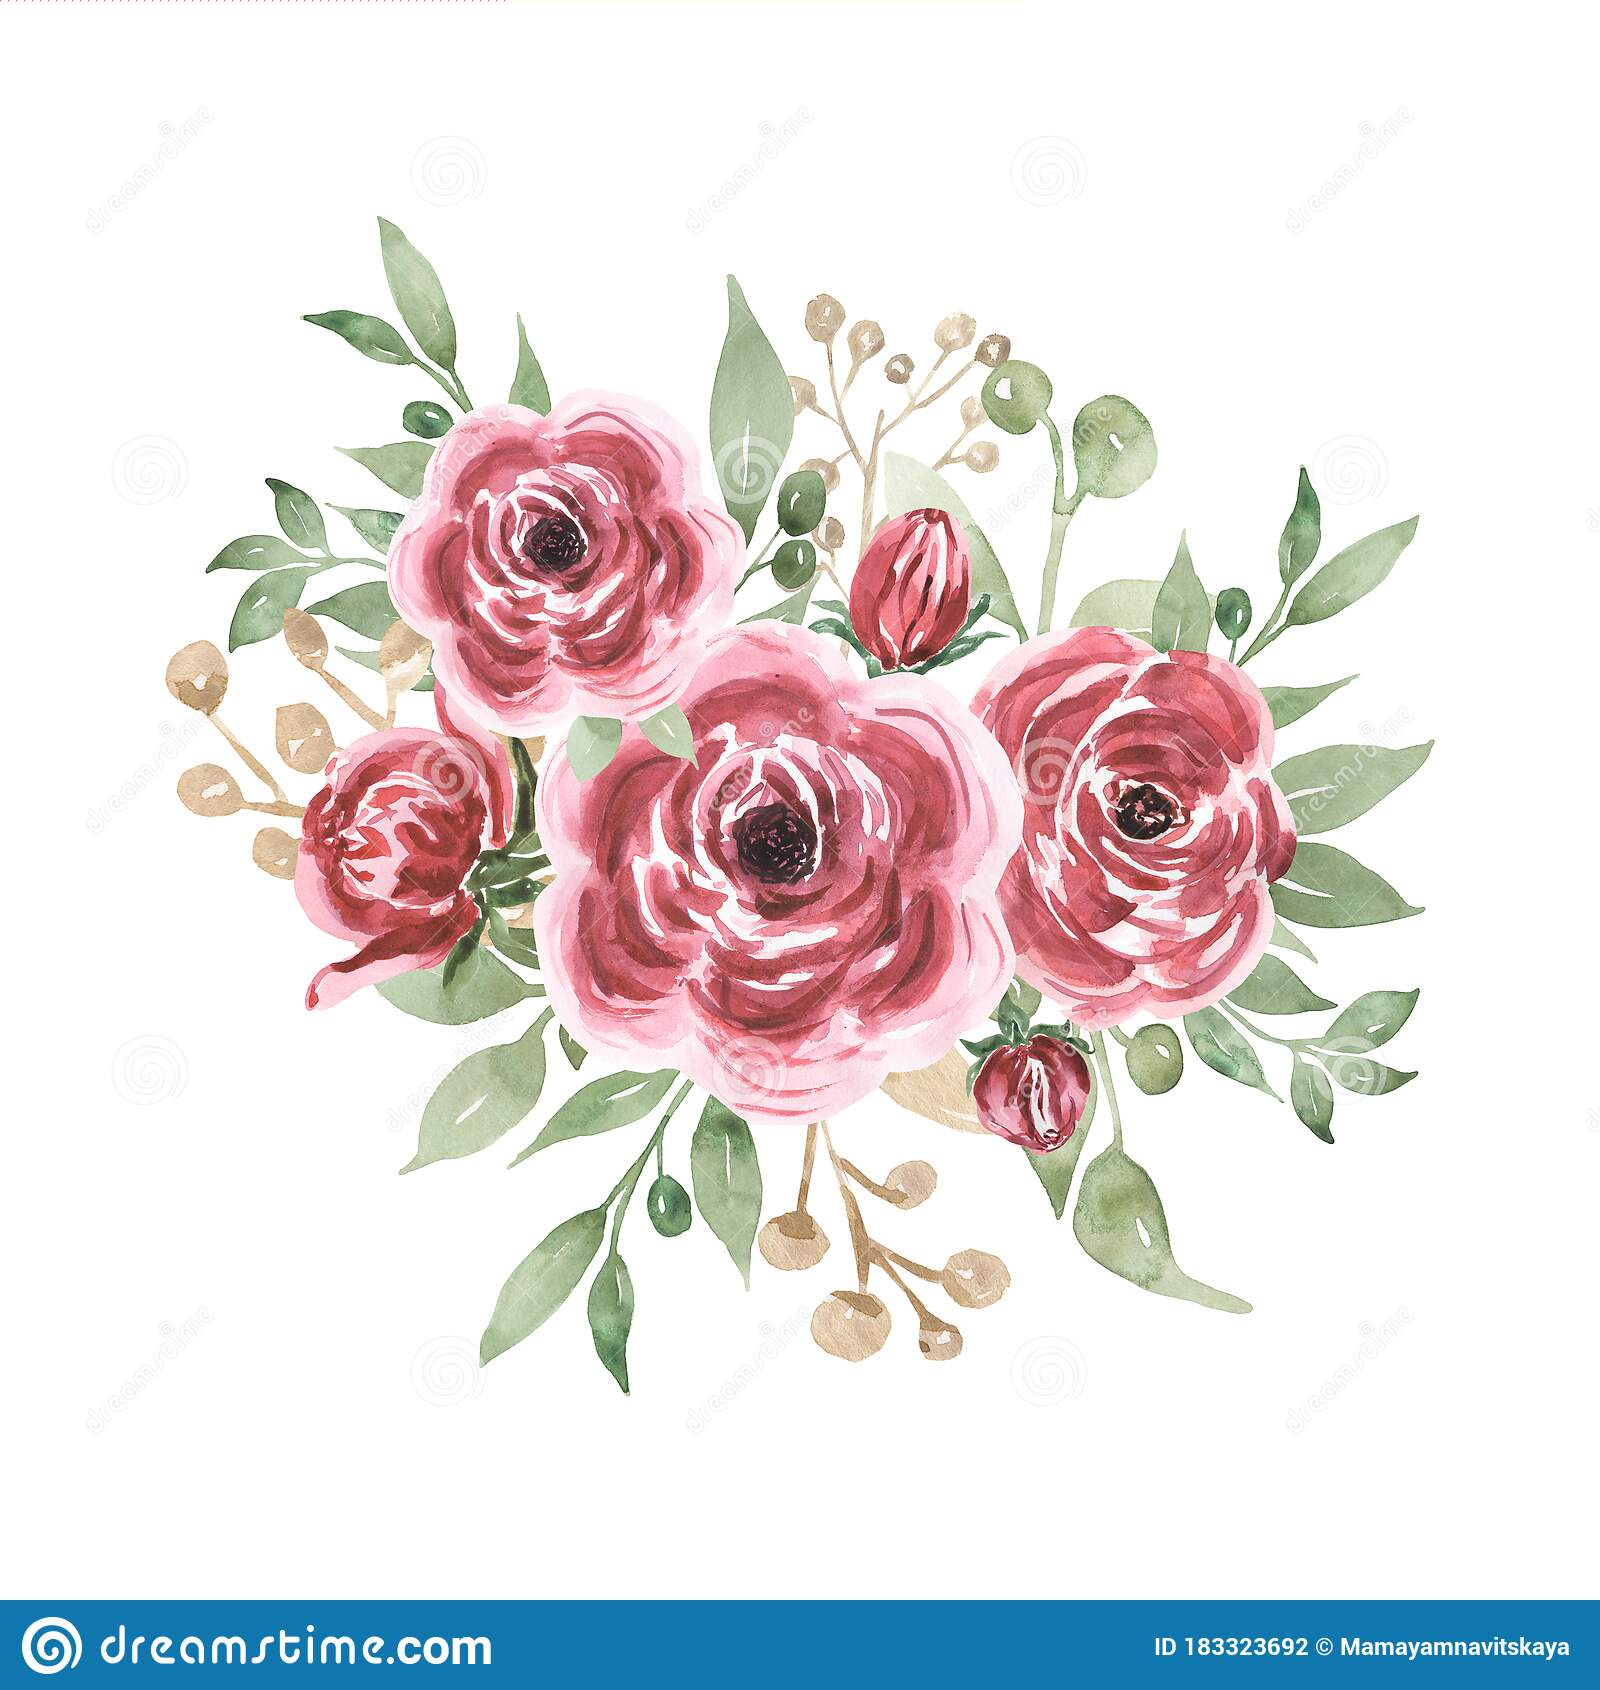 Watercolor Burgundy Summer Bouquets Illustration Pink Floral Arrangements Greenery Cliparts Wedding Flowers Wedding Invites Stock Illustration Illustration Of Garden Invites 183323692